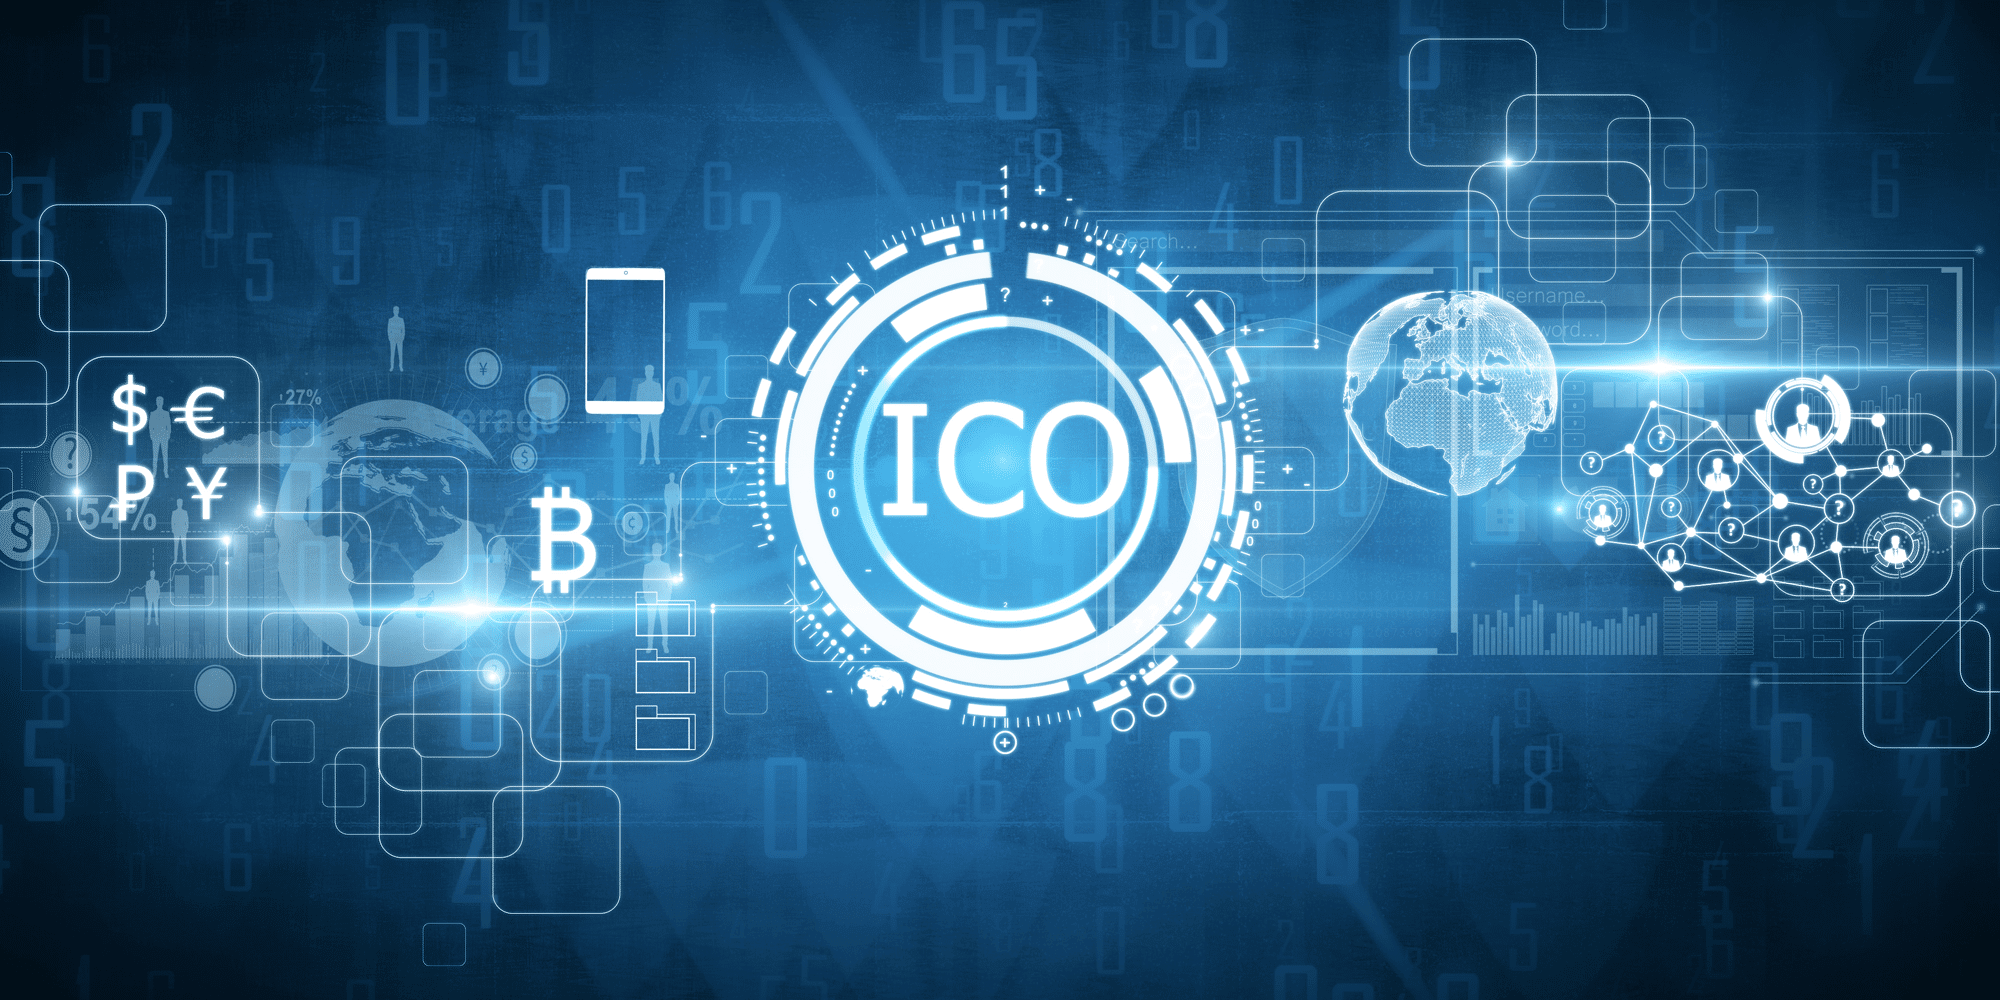 How to Create an Effective ICO Marketing Campaign | Forex Academy